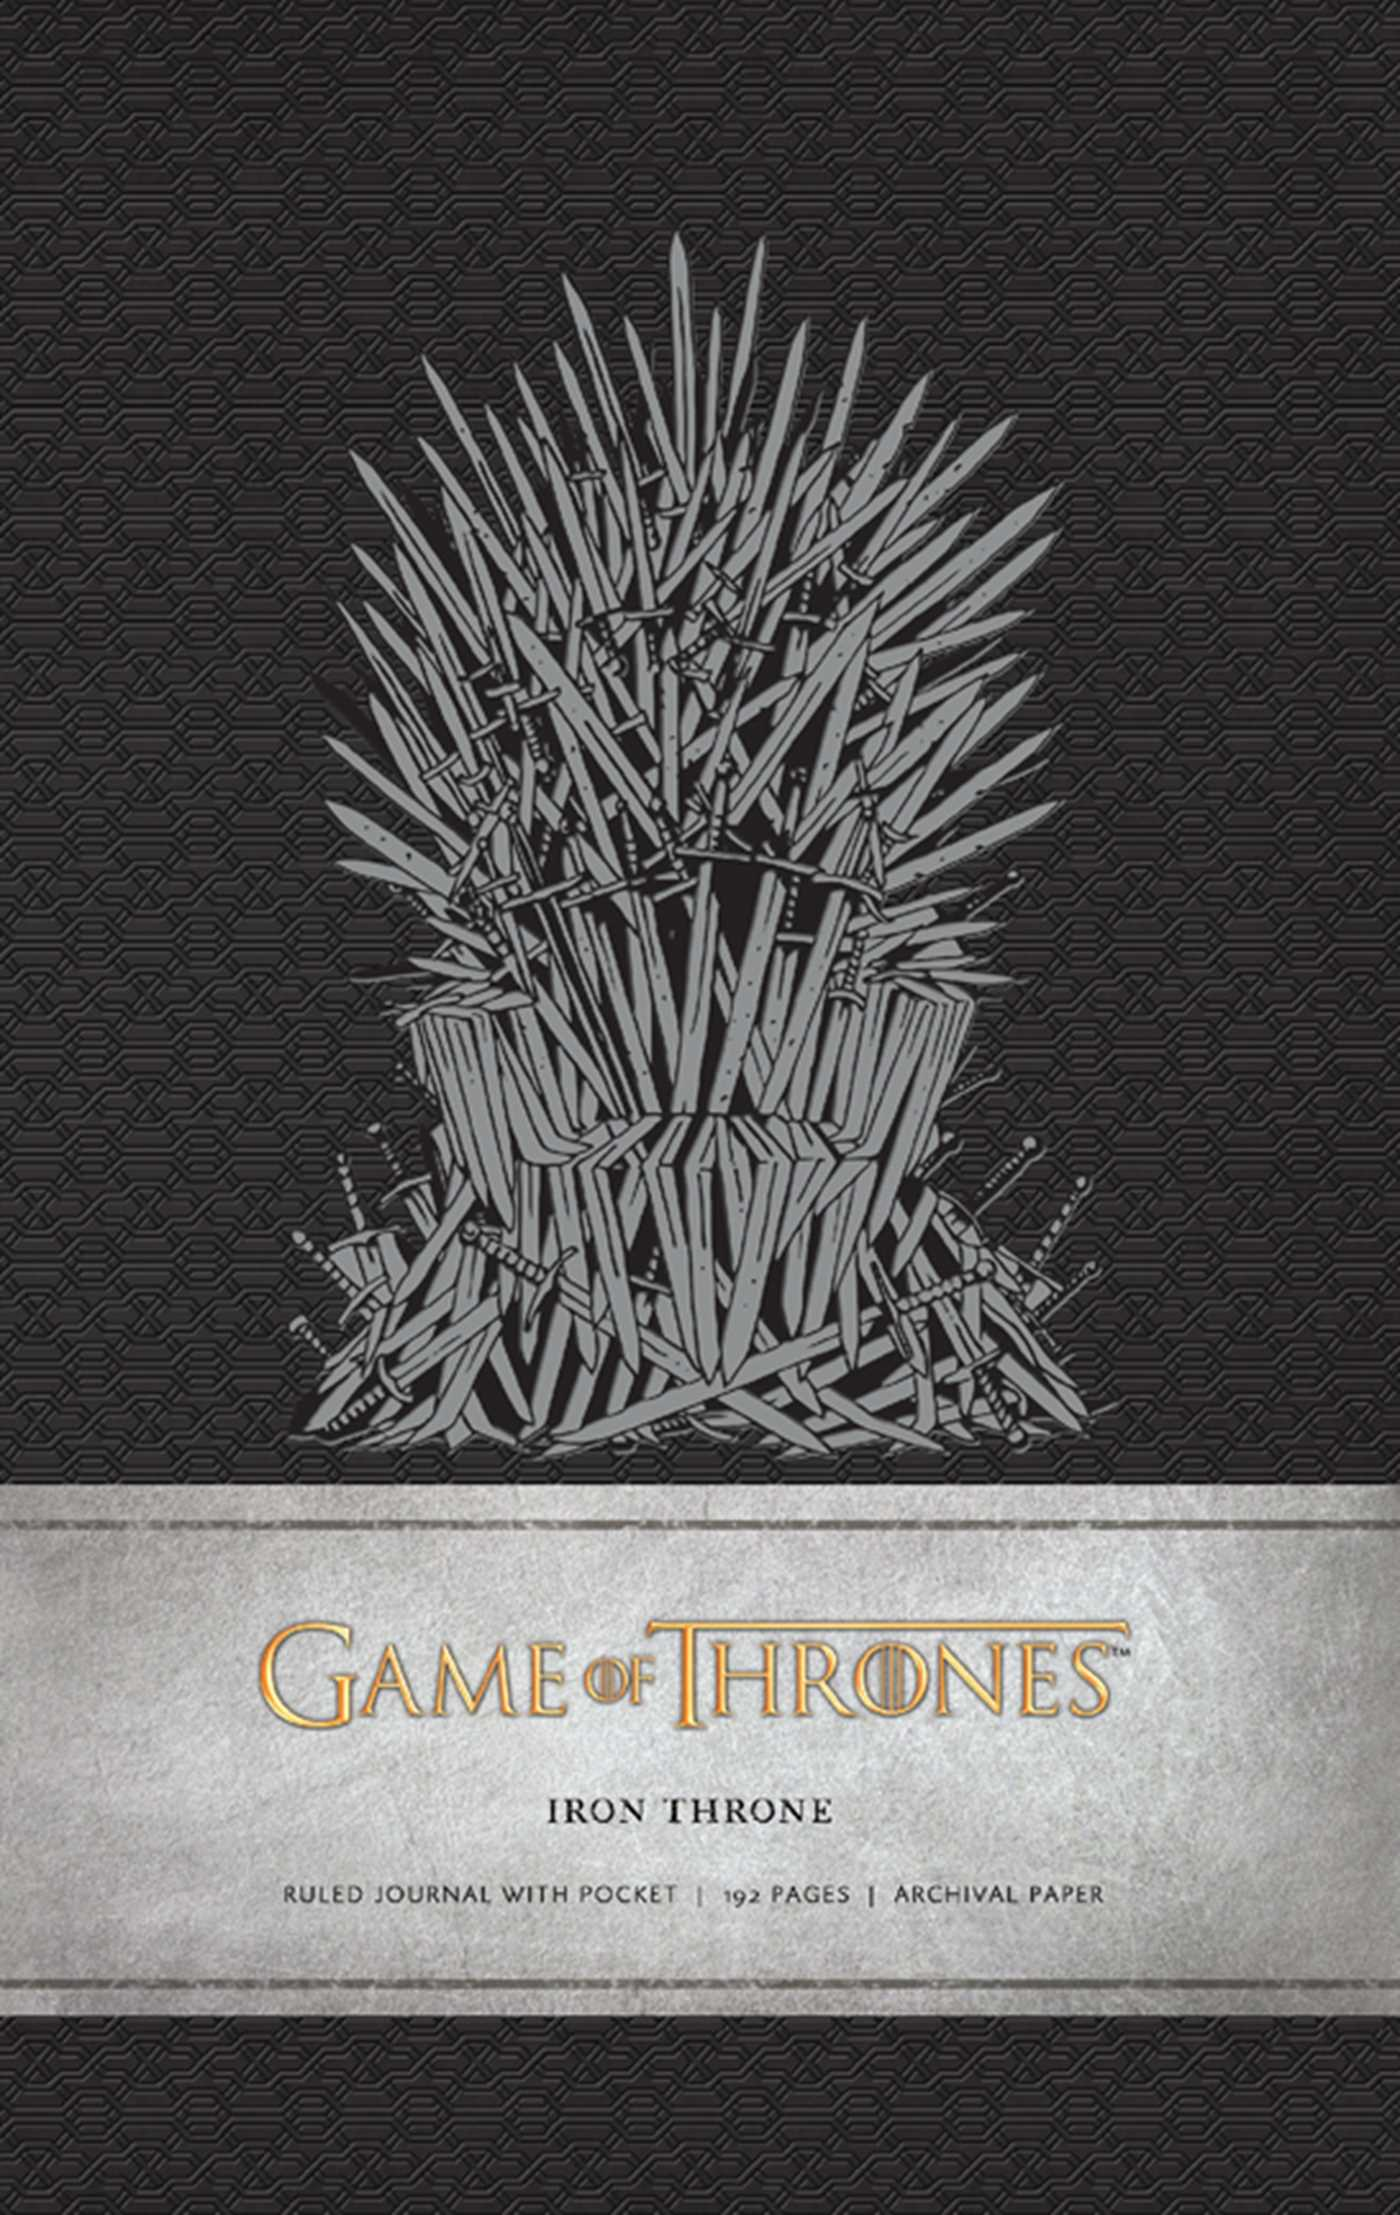 game thrones iron. Book Cover Image (jpg): Game Of Thrones: Iron Throne Hardcover Ruled Journal Thrones N